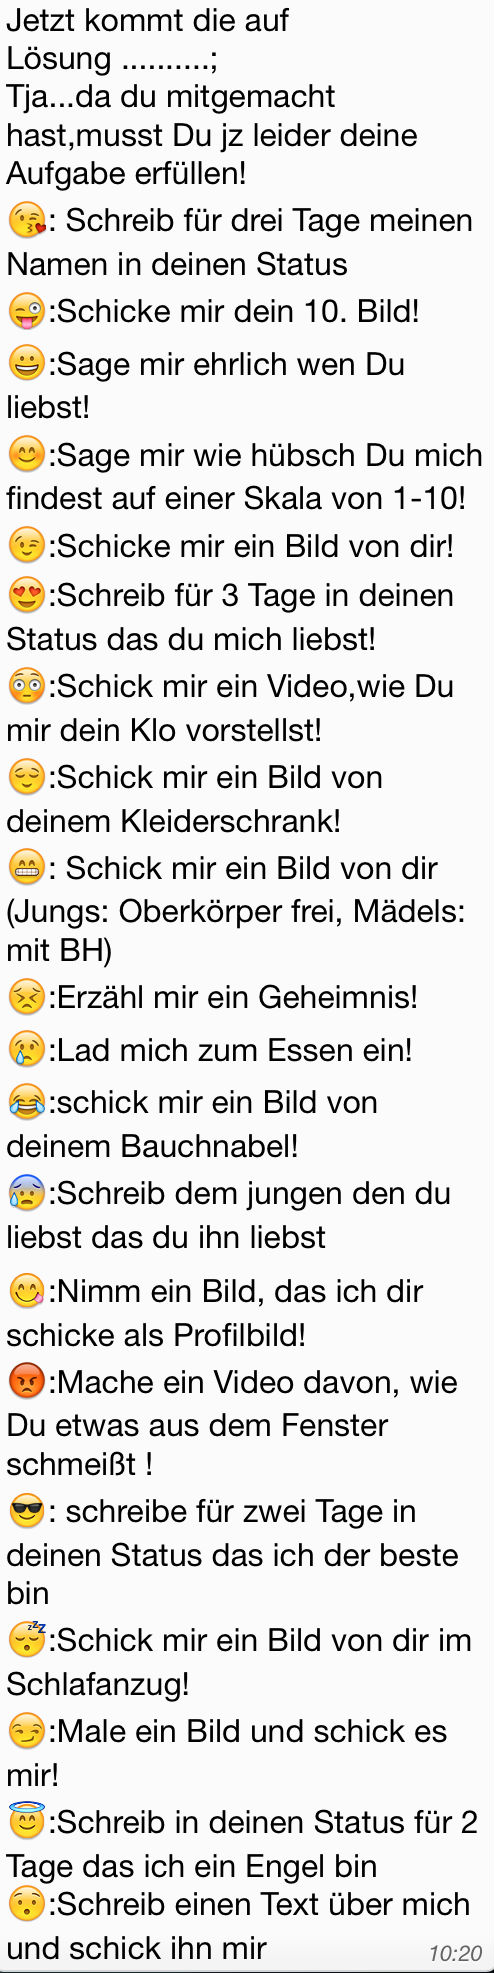 mann sendet kuss smiley